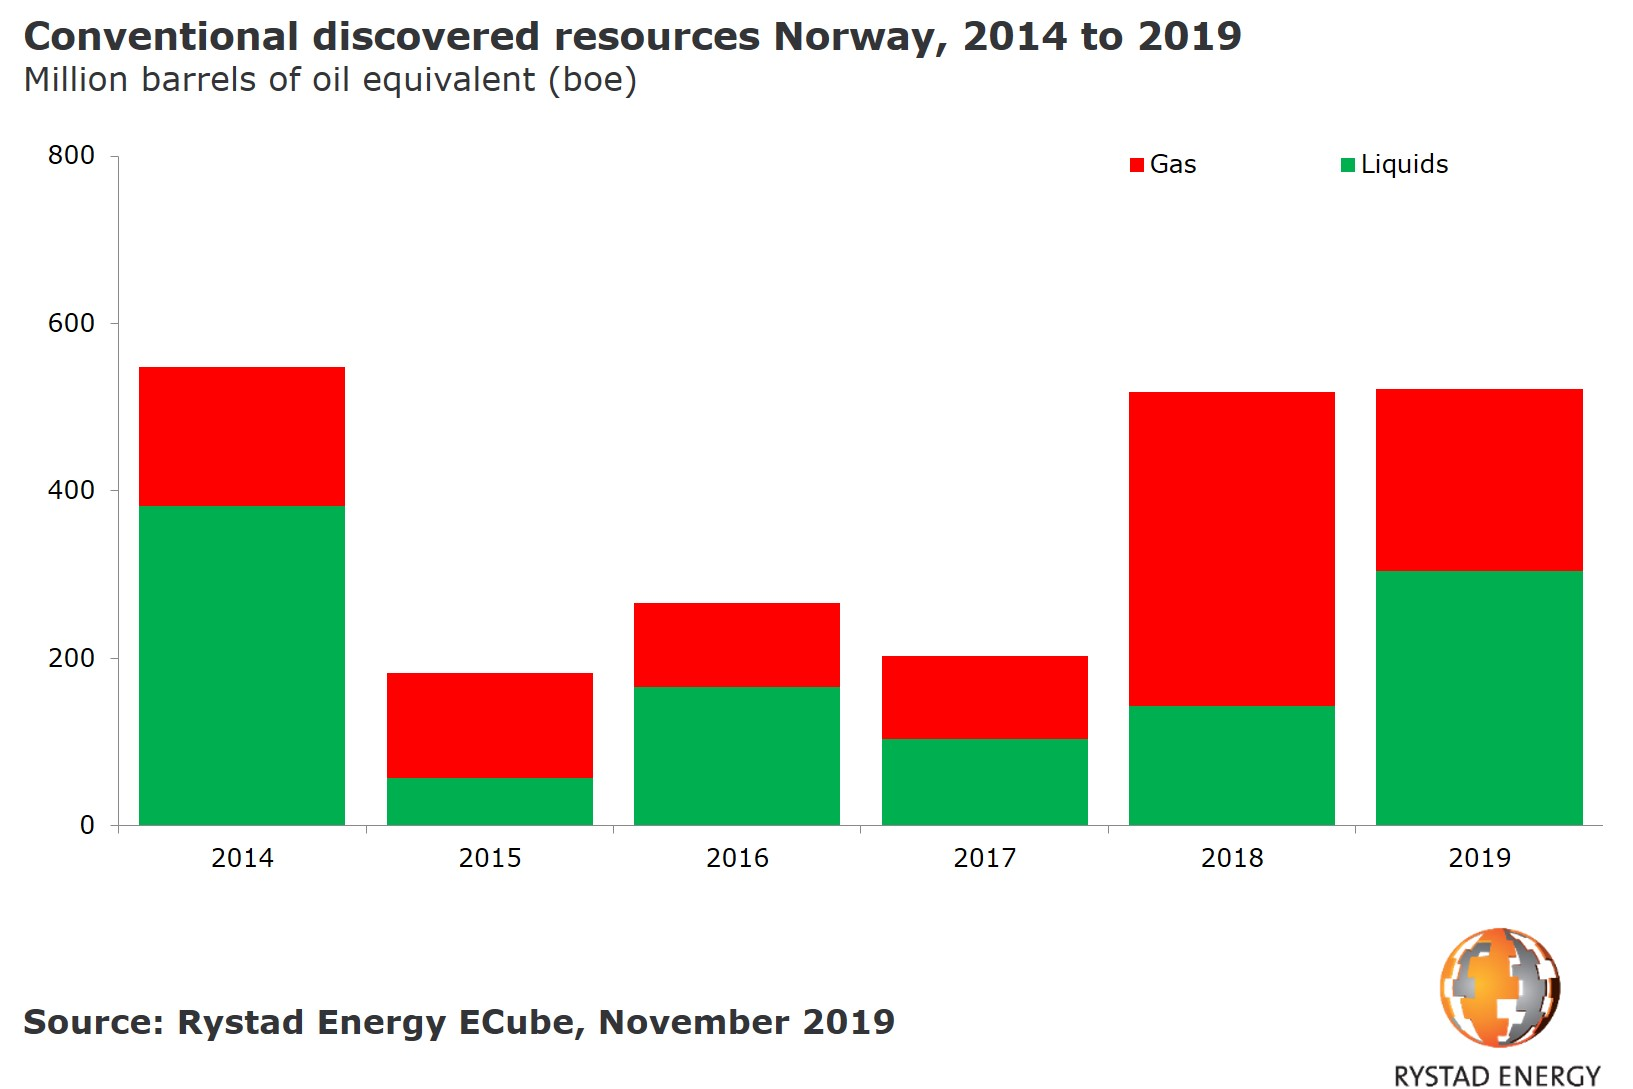 Conventional discovered resources Norway 2014 2019 million barrels of oil equivalent Rystad Energy ECube November 2019